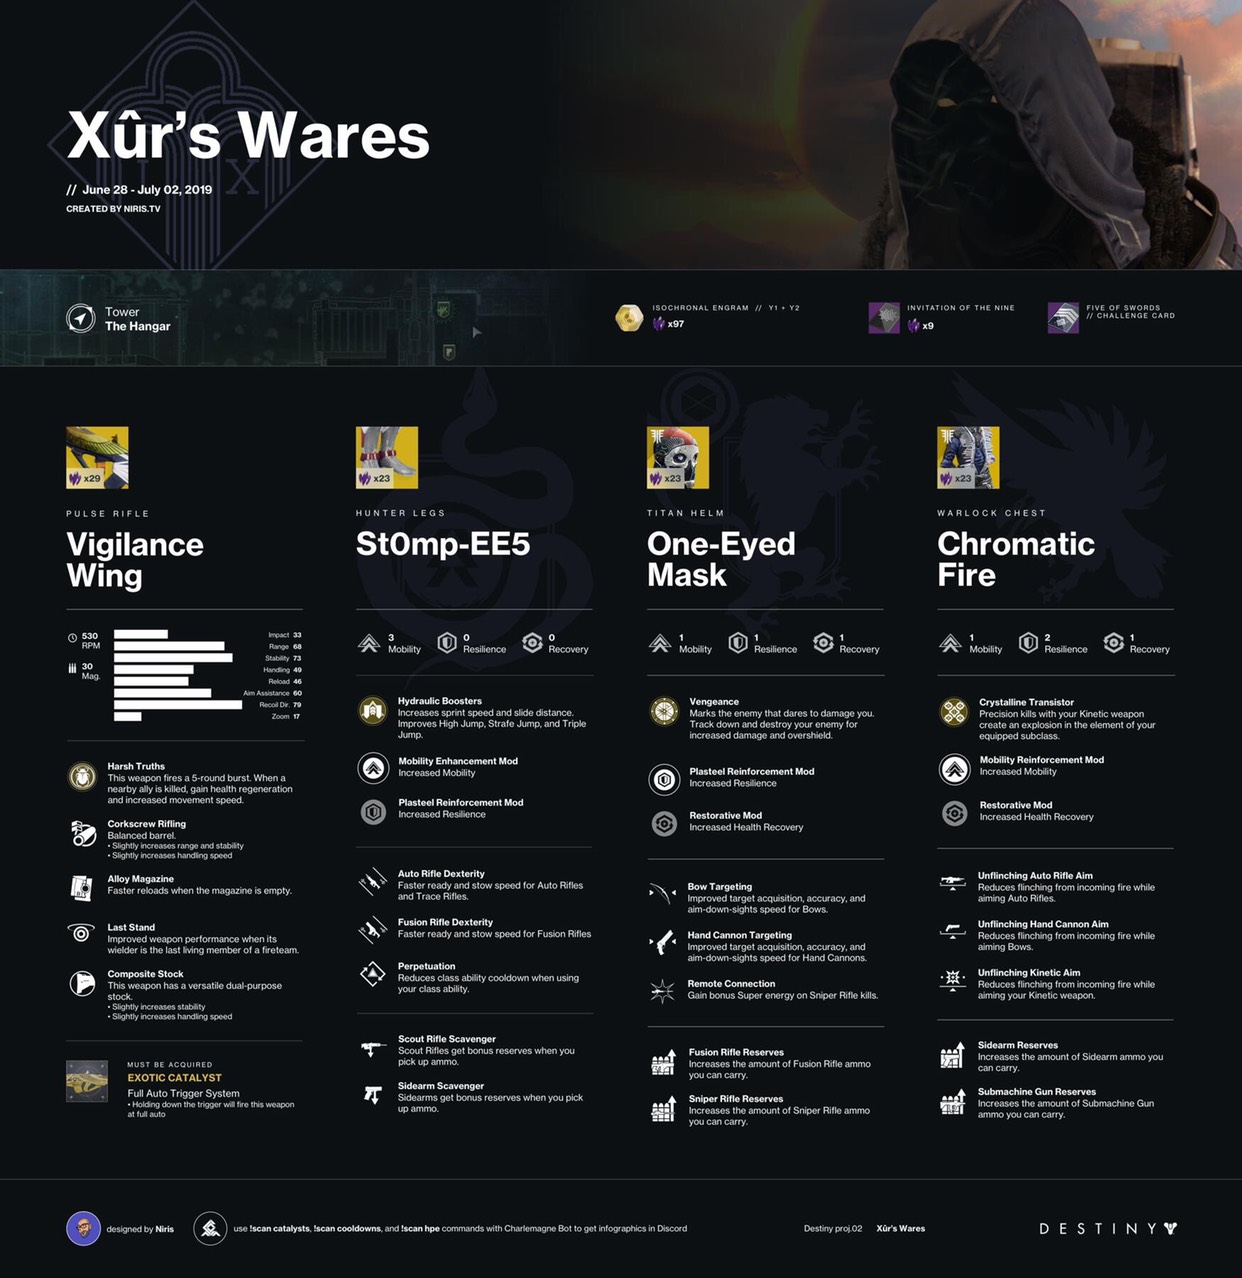 destiny 2 xur location, Destiny 2 Xur Location and Items for Today June 28, 2019, MP1st, MP1st